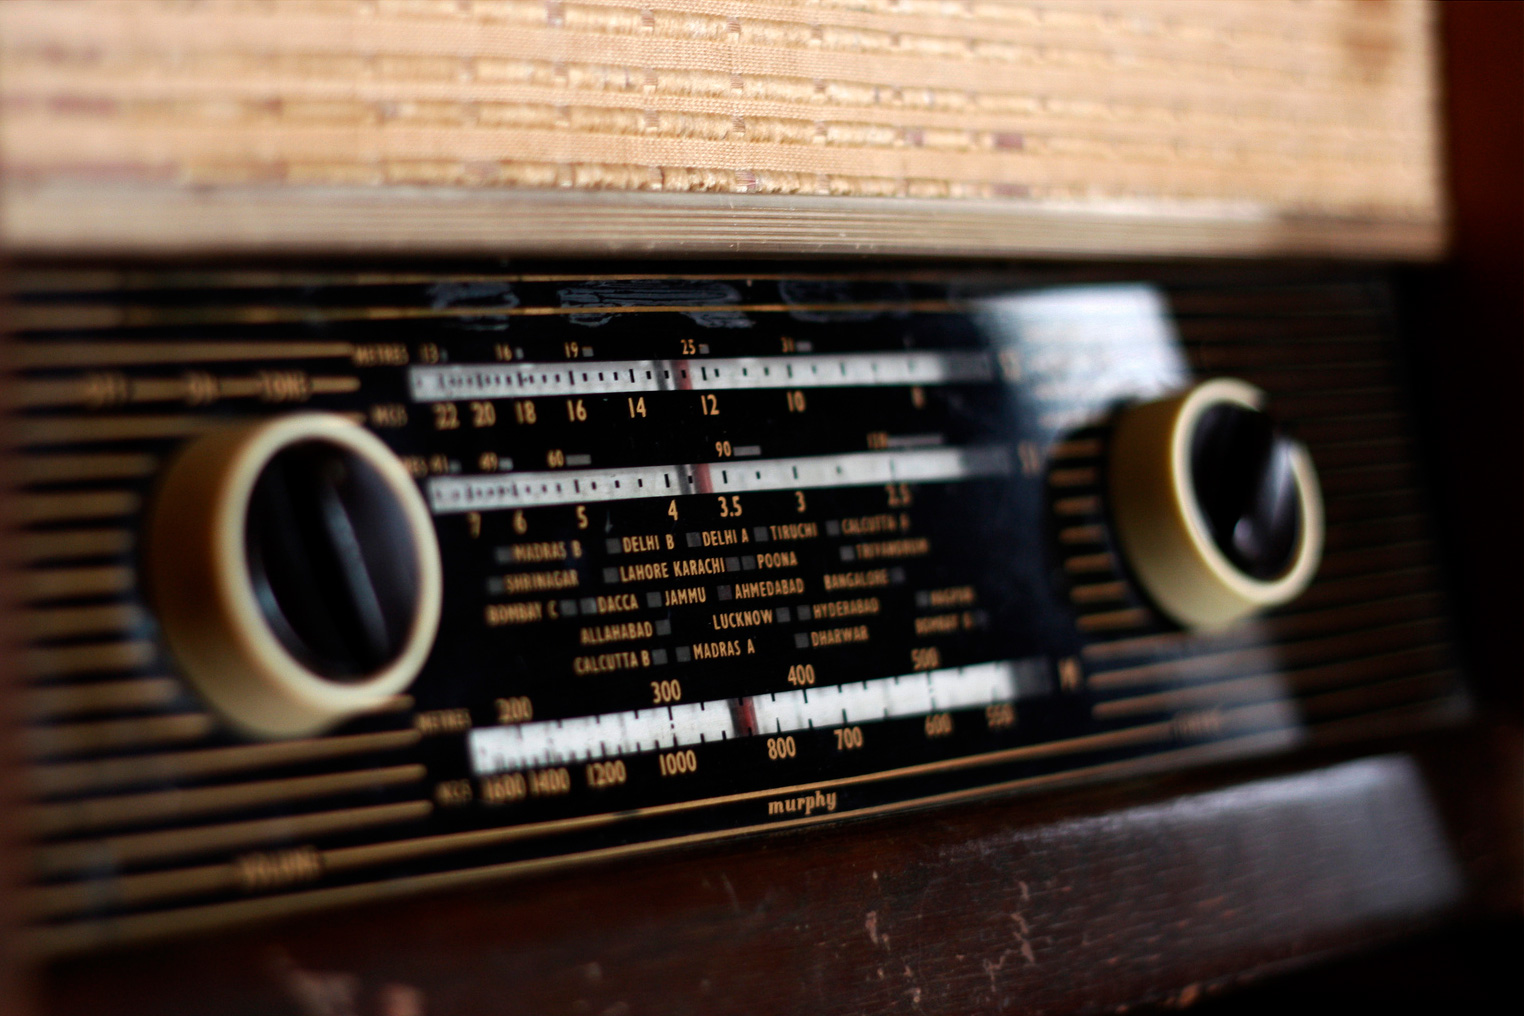 Old-Indian-Brands-that-Faded-Away-murphy-valve-radio